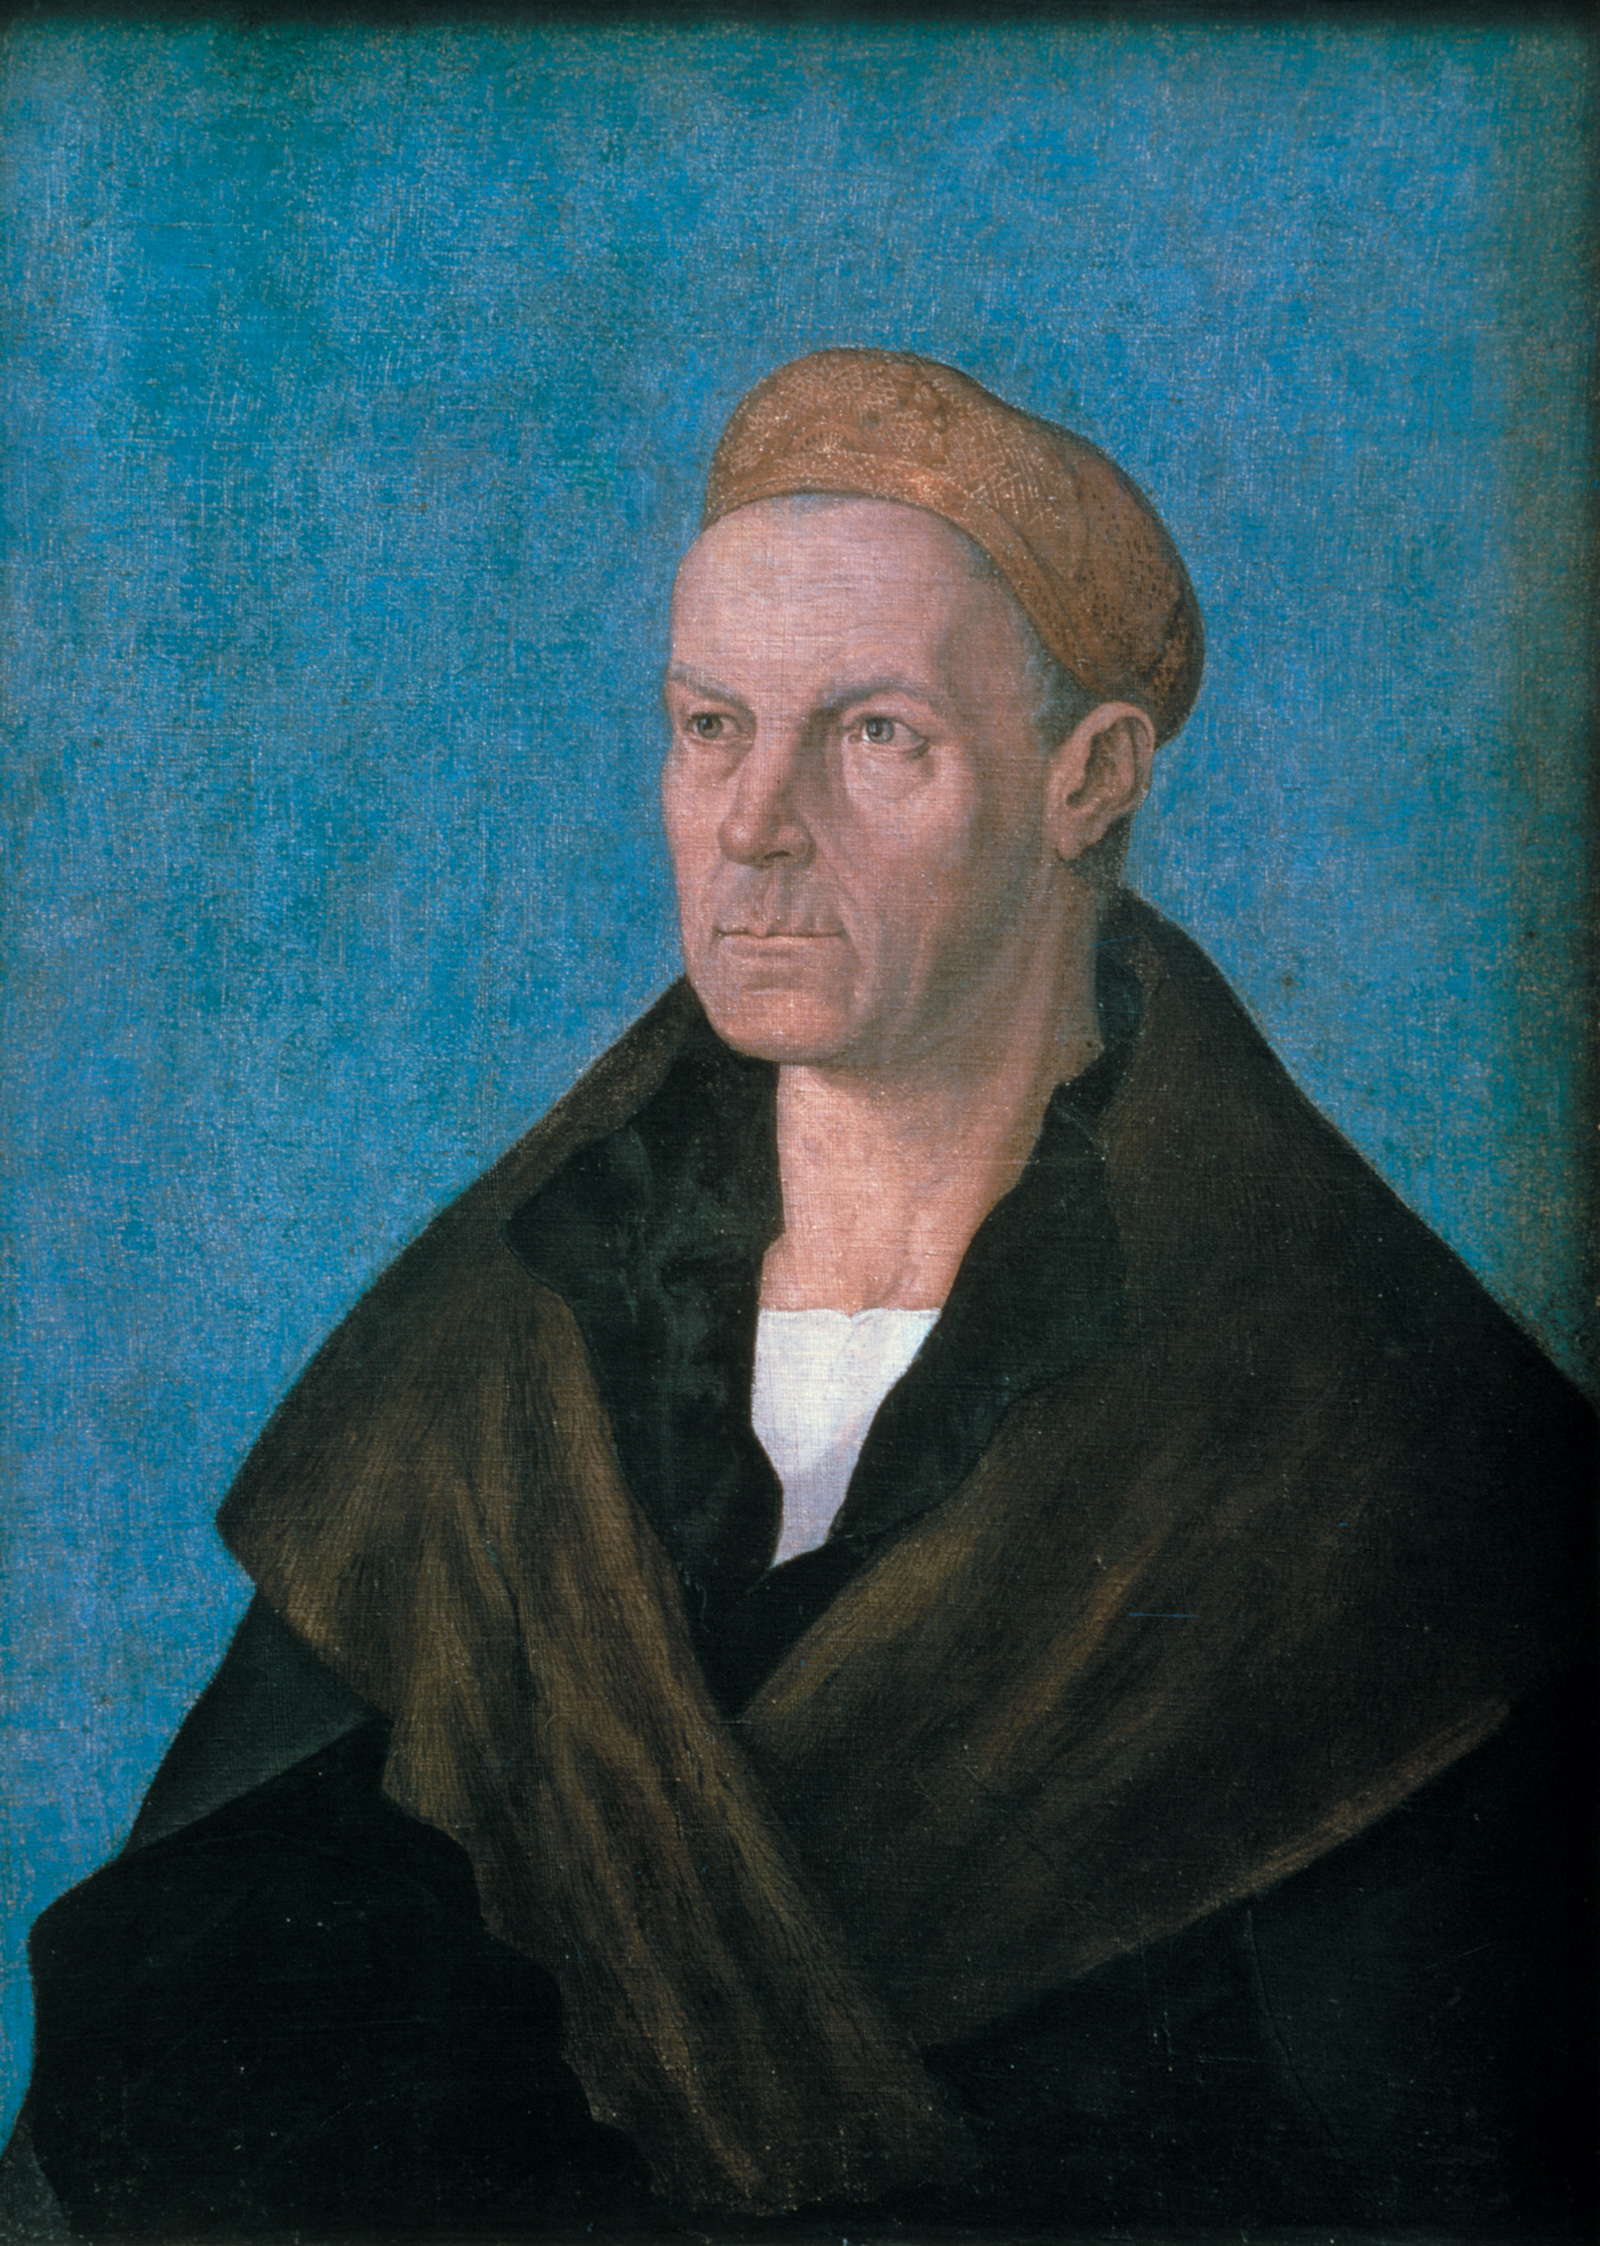 Jacob Fugger; portrait by Albrecht Dürer, circa 1520